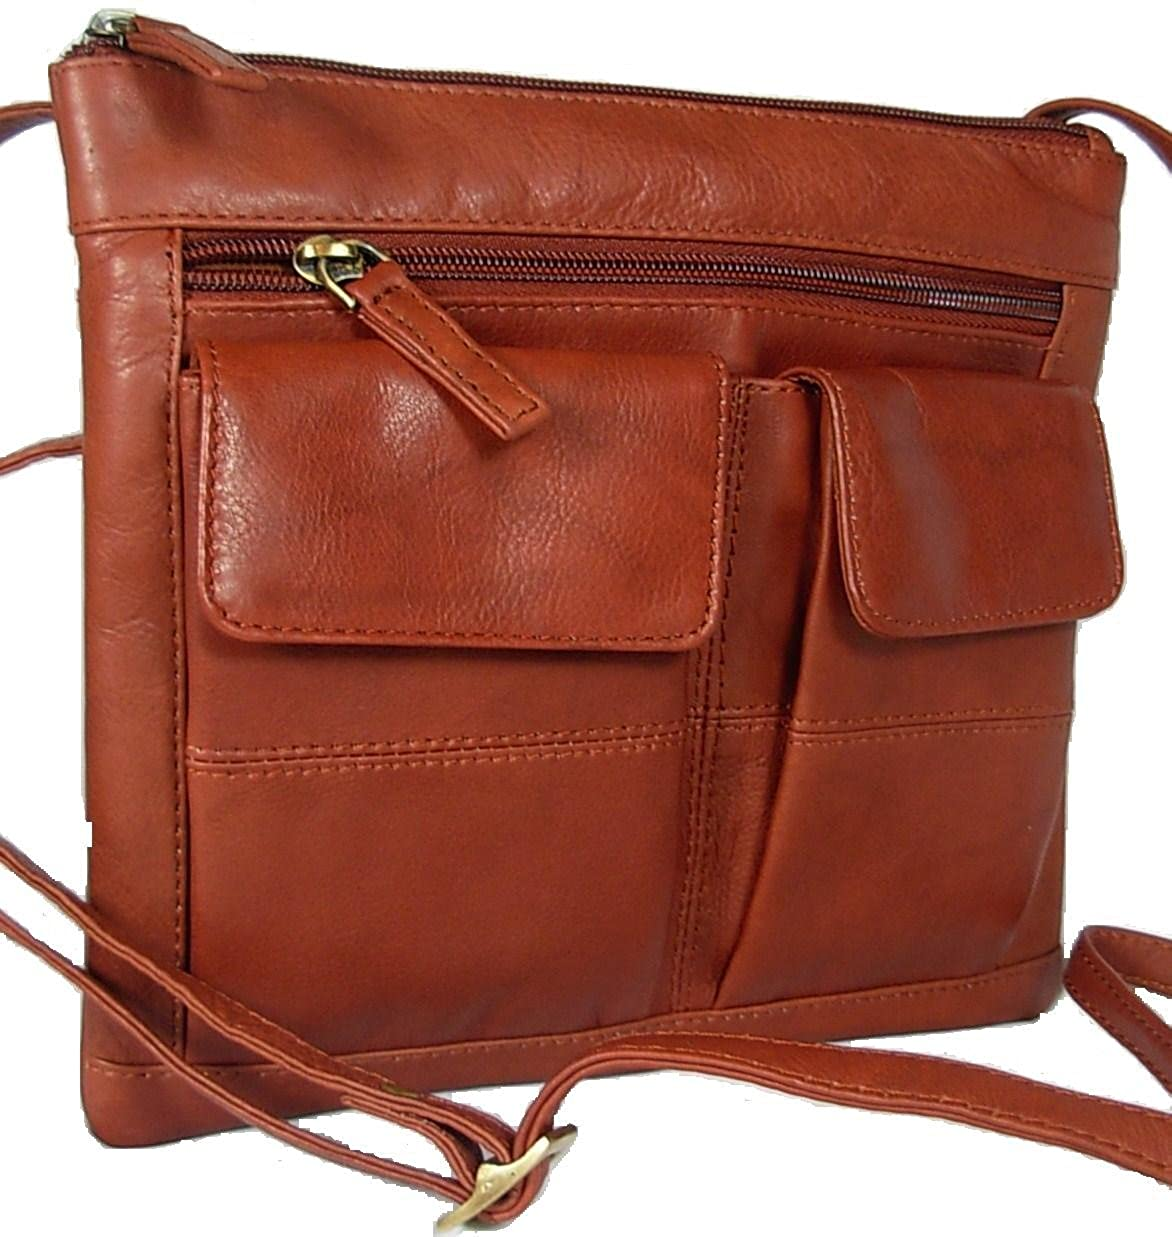 New ladies small brown leather Visconti across body messenger bag satchel 18608/A